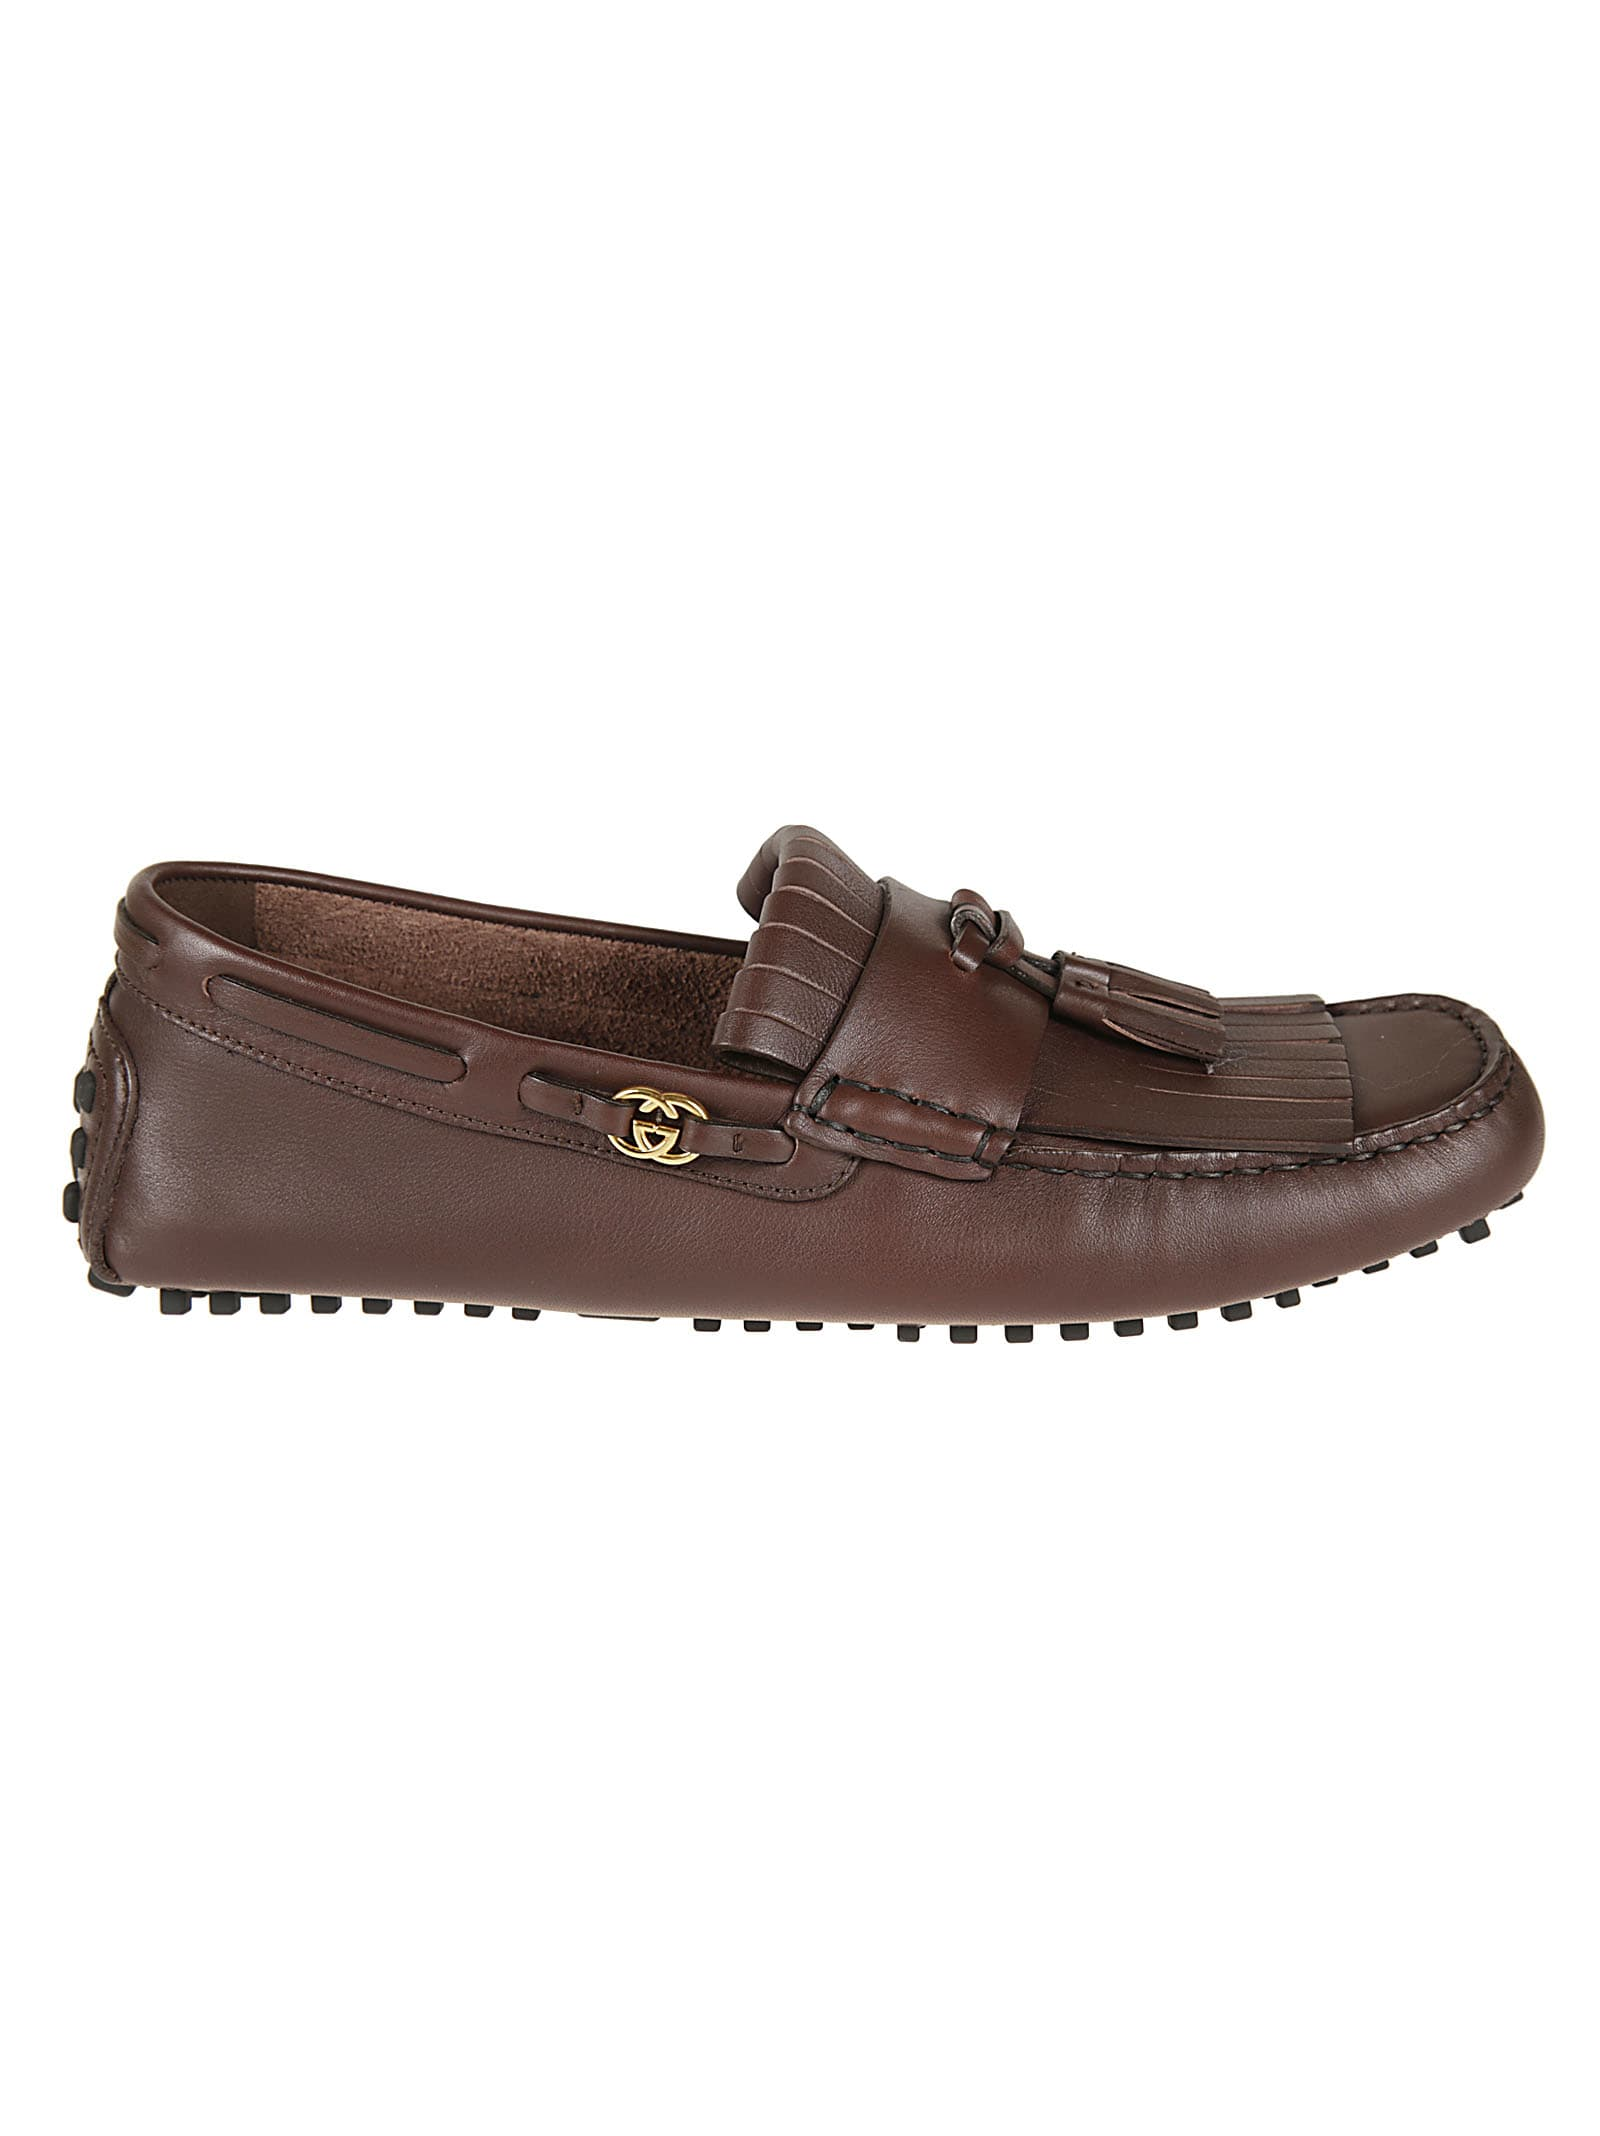 Gucci Tassel Detail Loafers